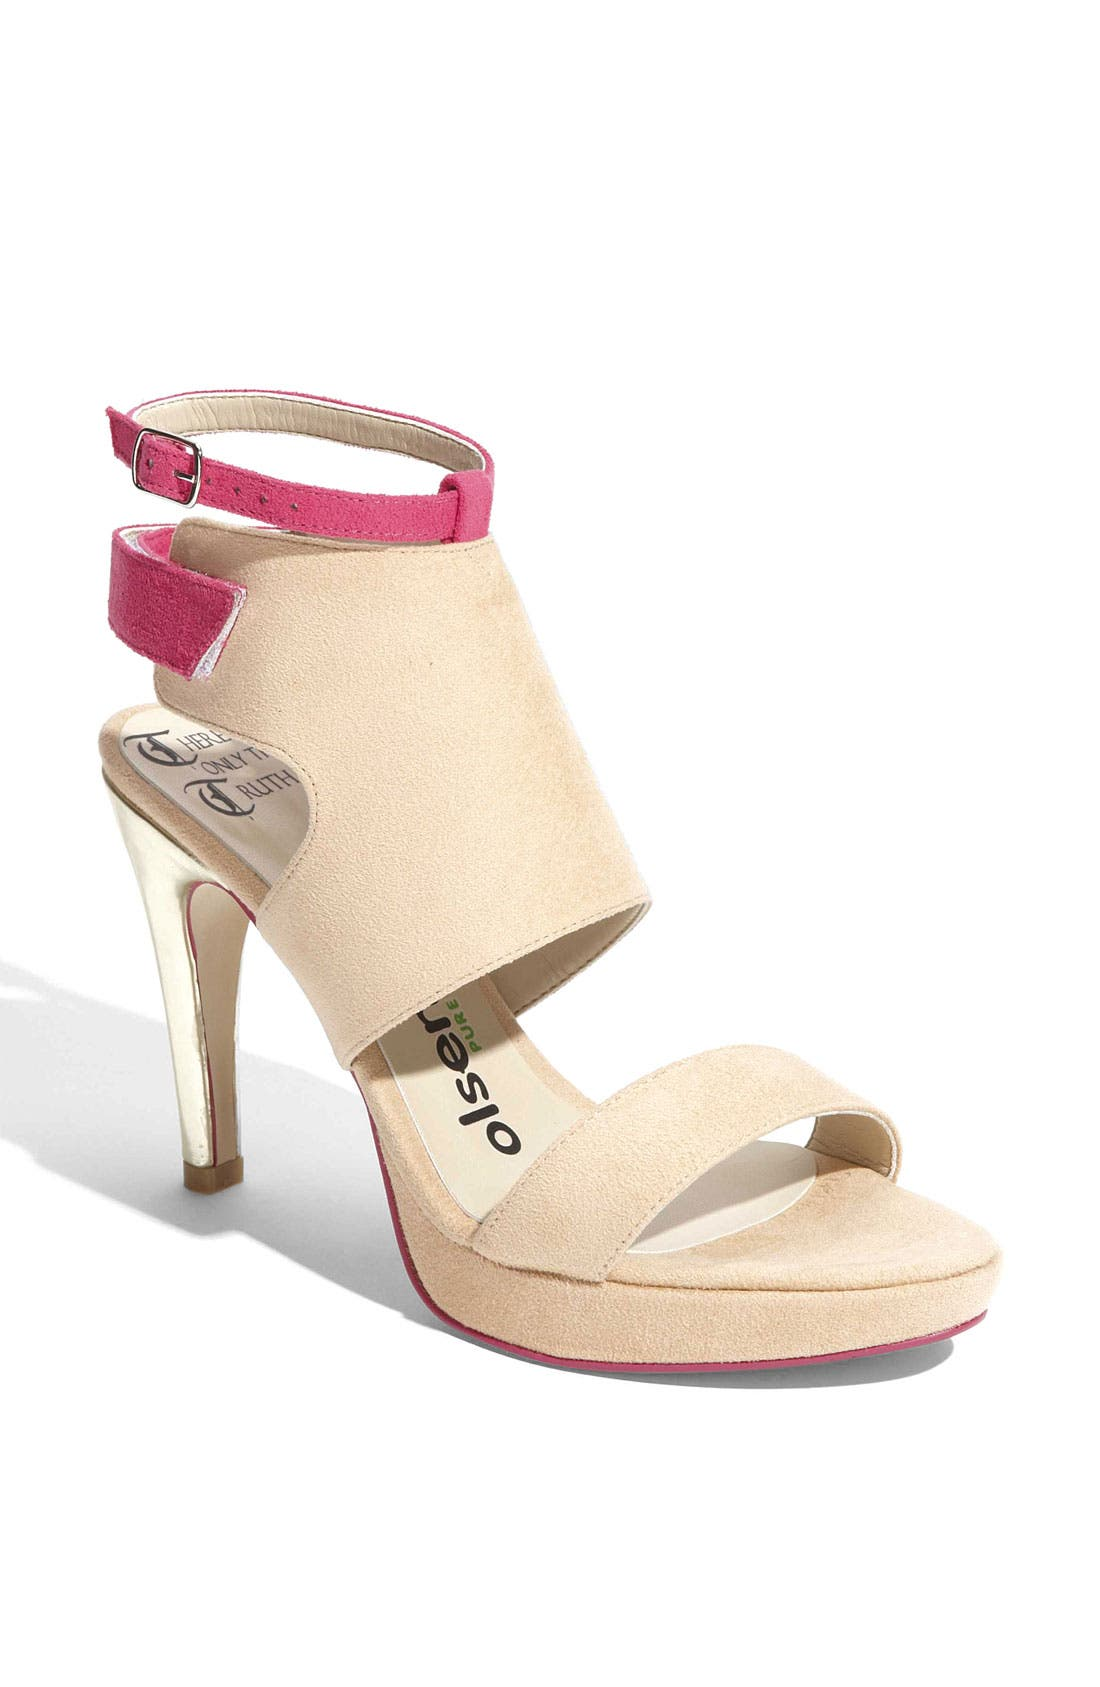 Main Image - Olsenhaus Pure Vegan 'Key West' Sandal